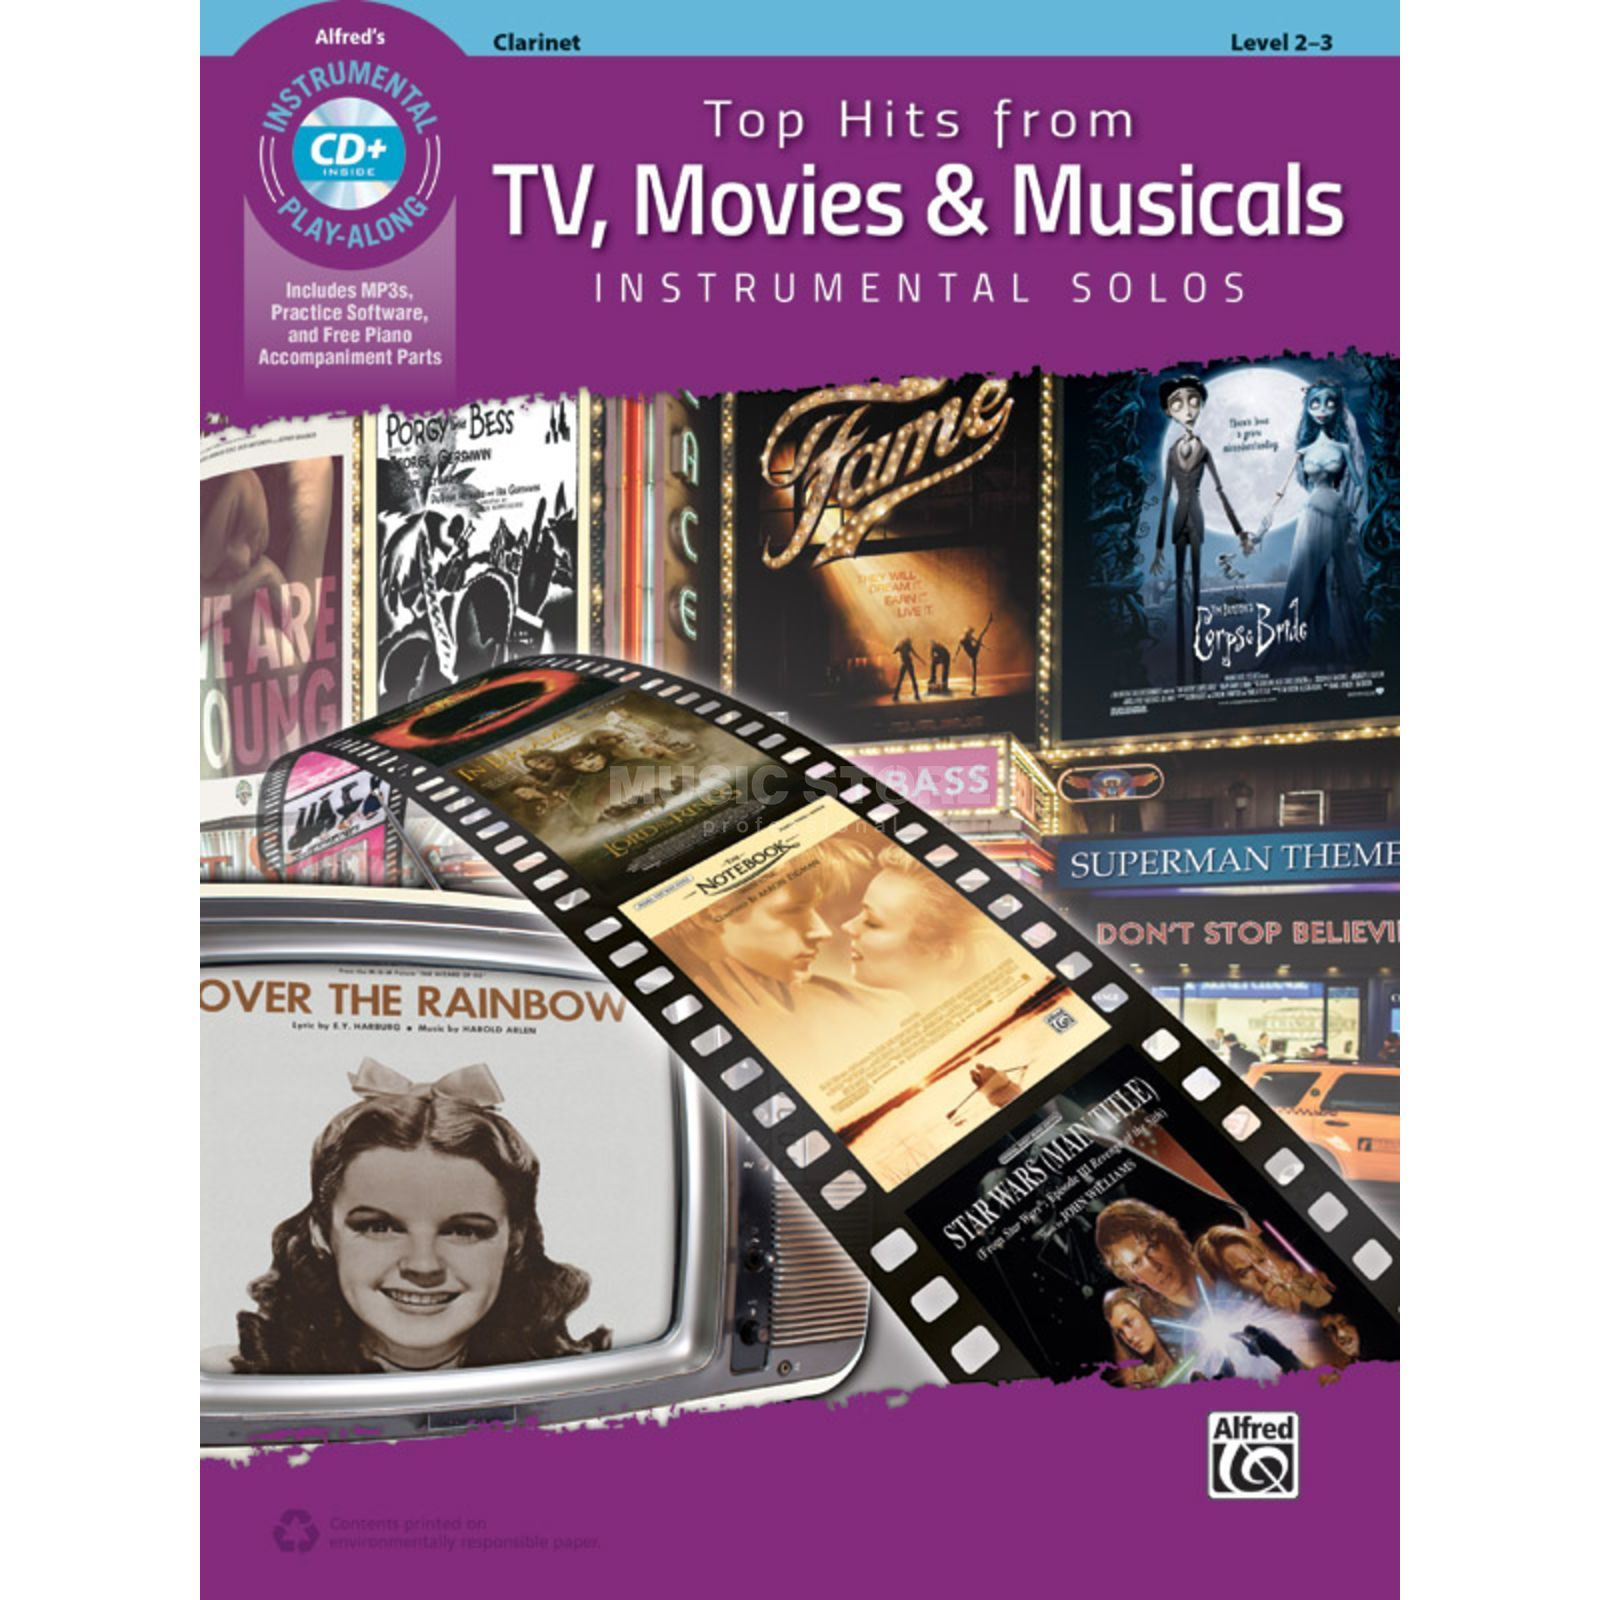 Alfred Music Top Hits from TV, Movies & Musicals – Clarinet Imagen del producto